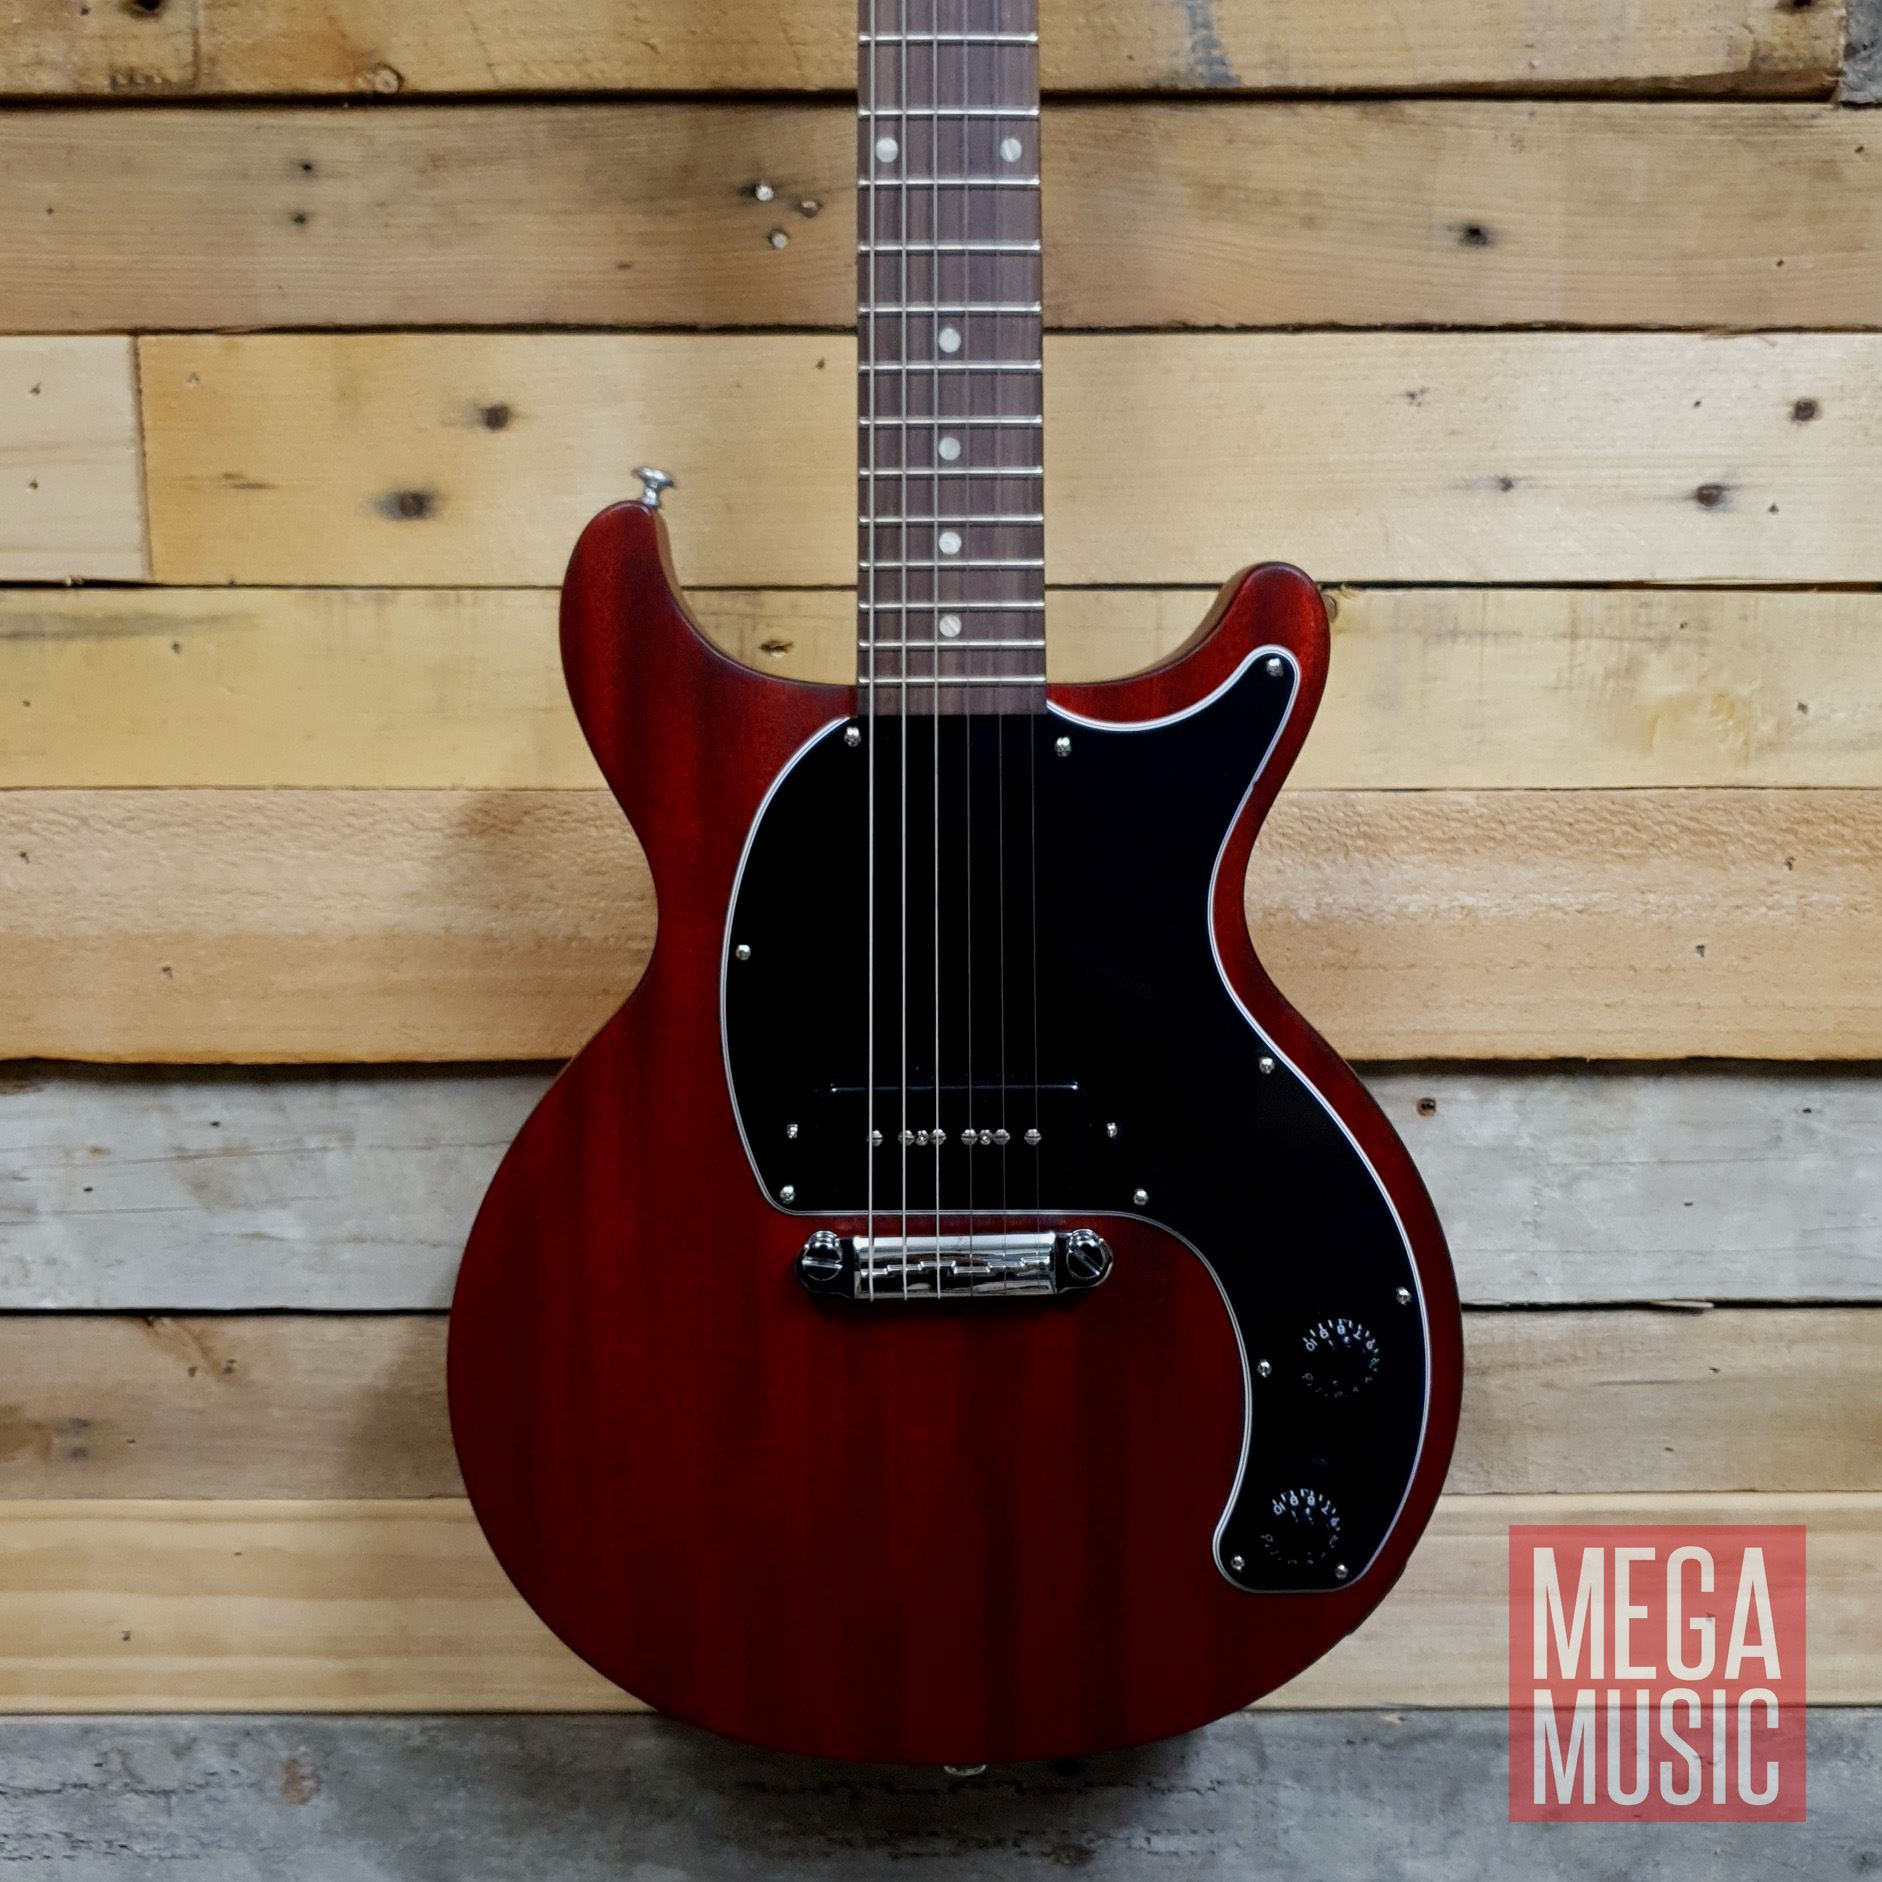 Gibson Les Paul Junior Tribute Double Cut Electric Guitar - Worn Cherry - Front Body